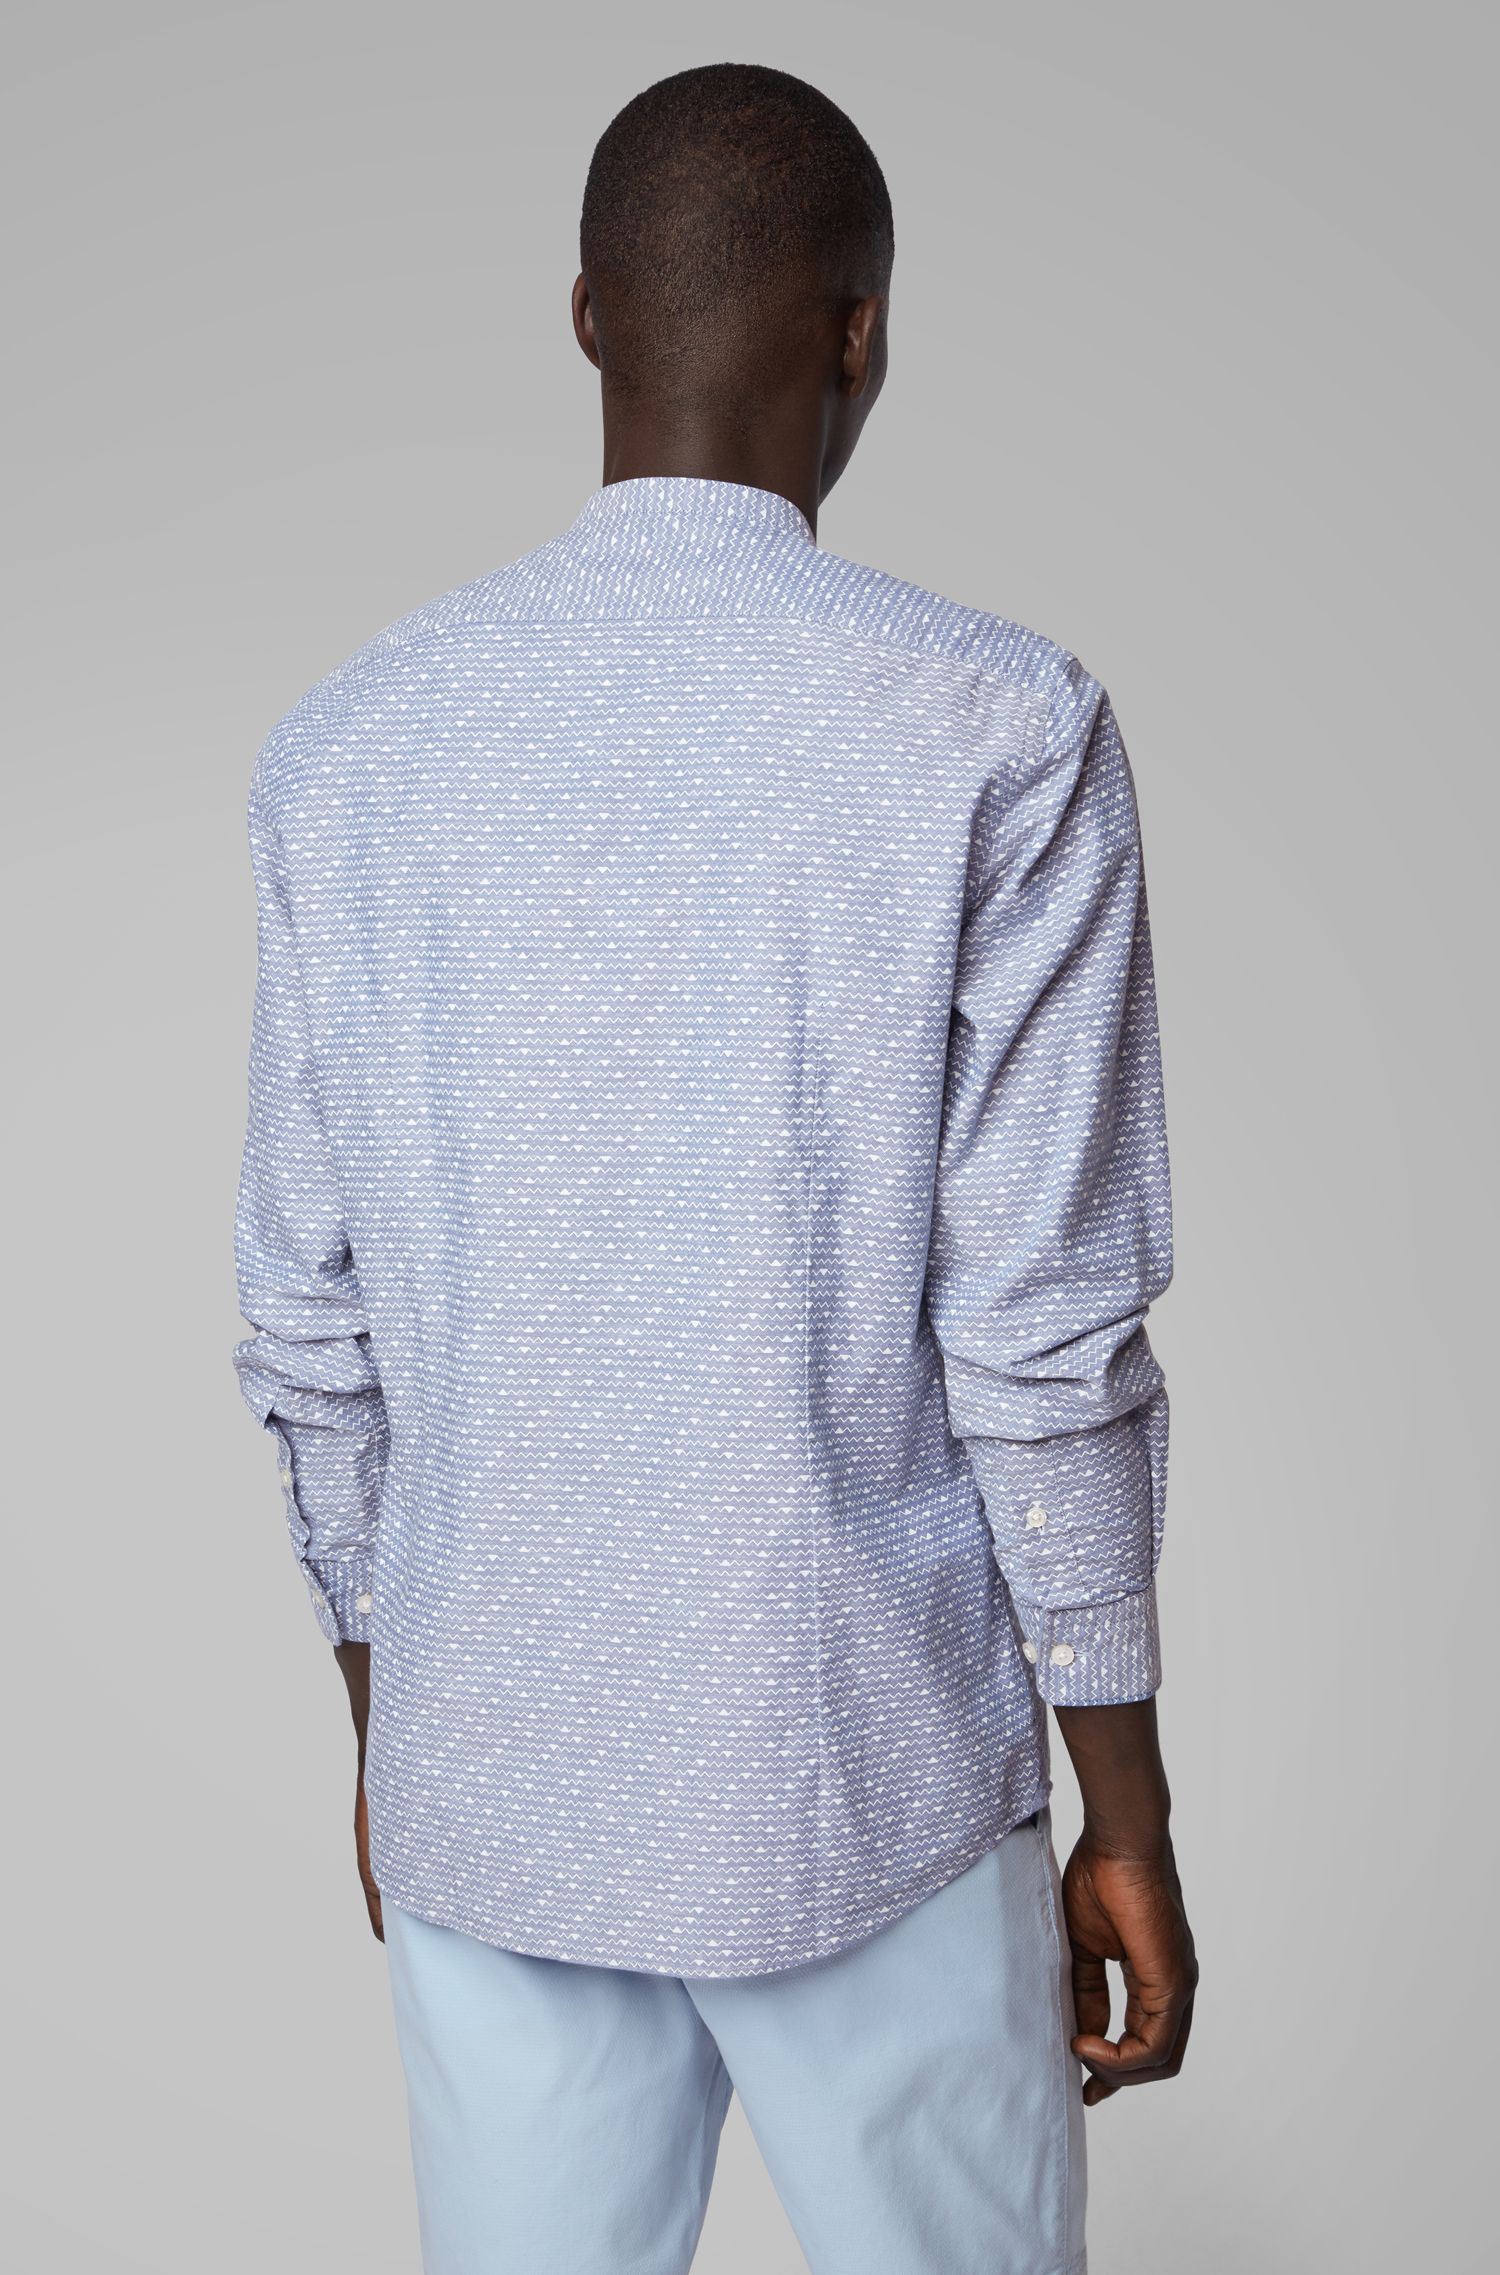 Regular-fit shirt in geometric-print cotton and linen, Dark Blue